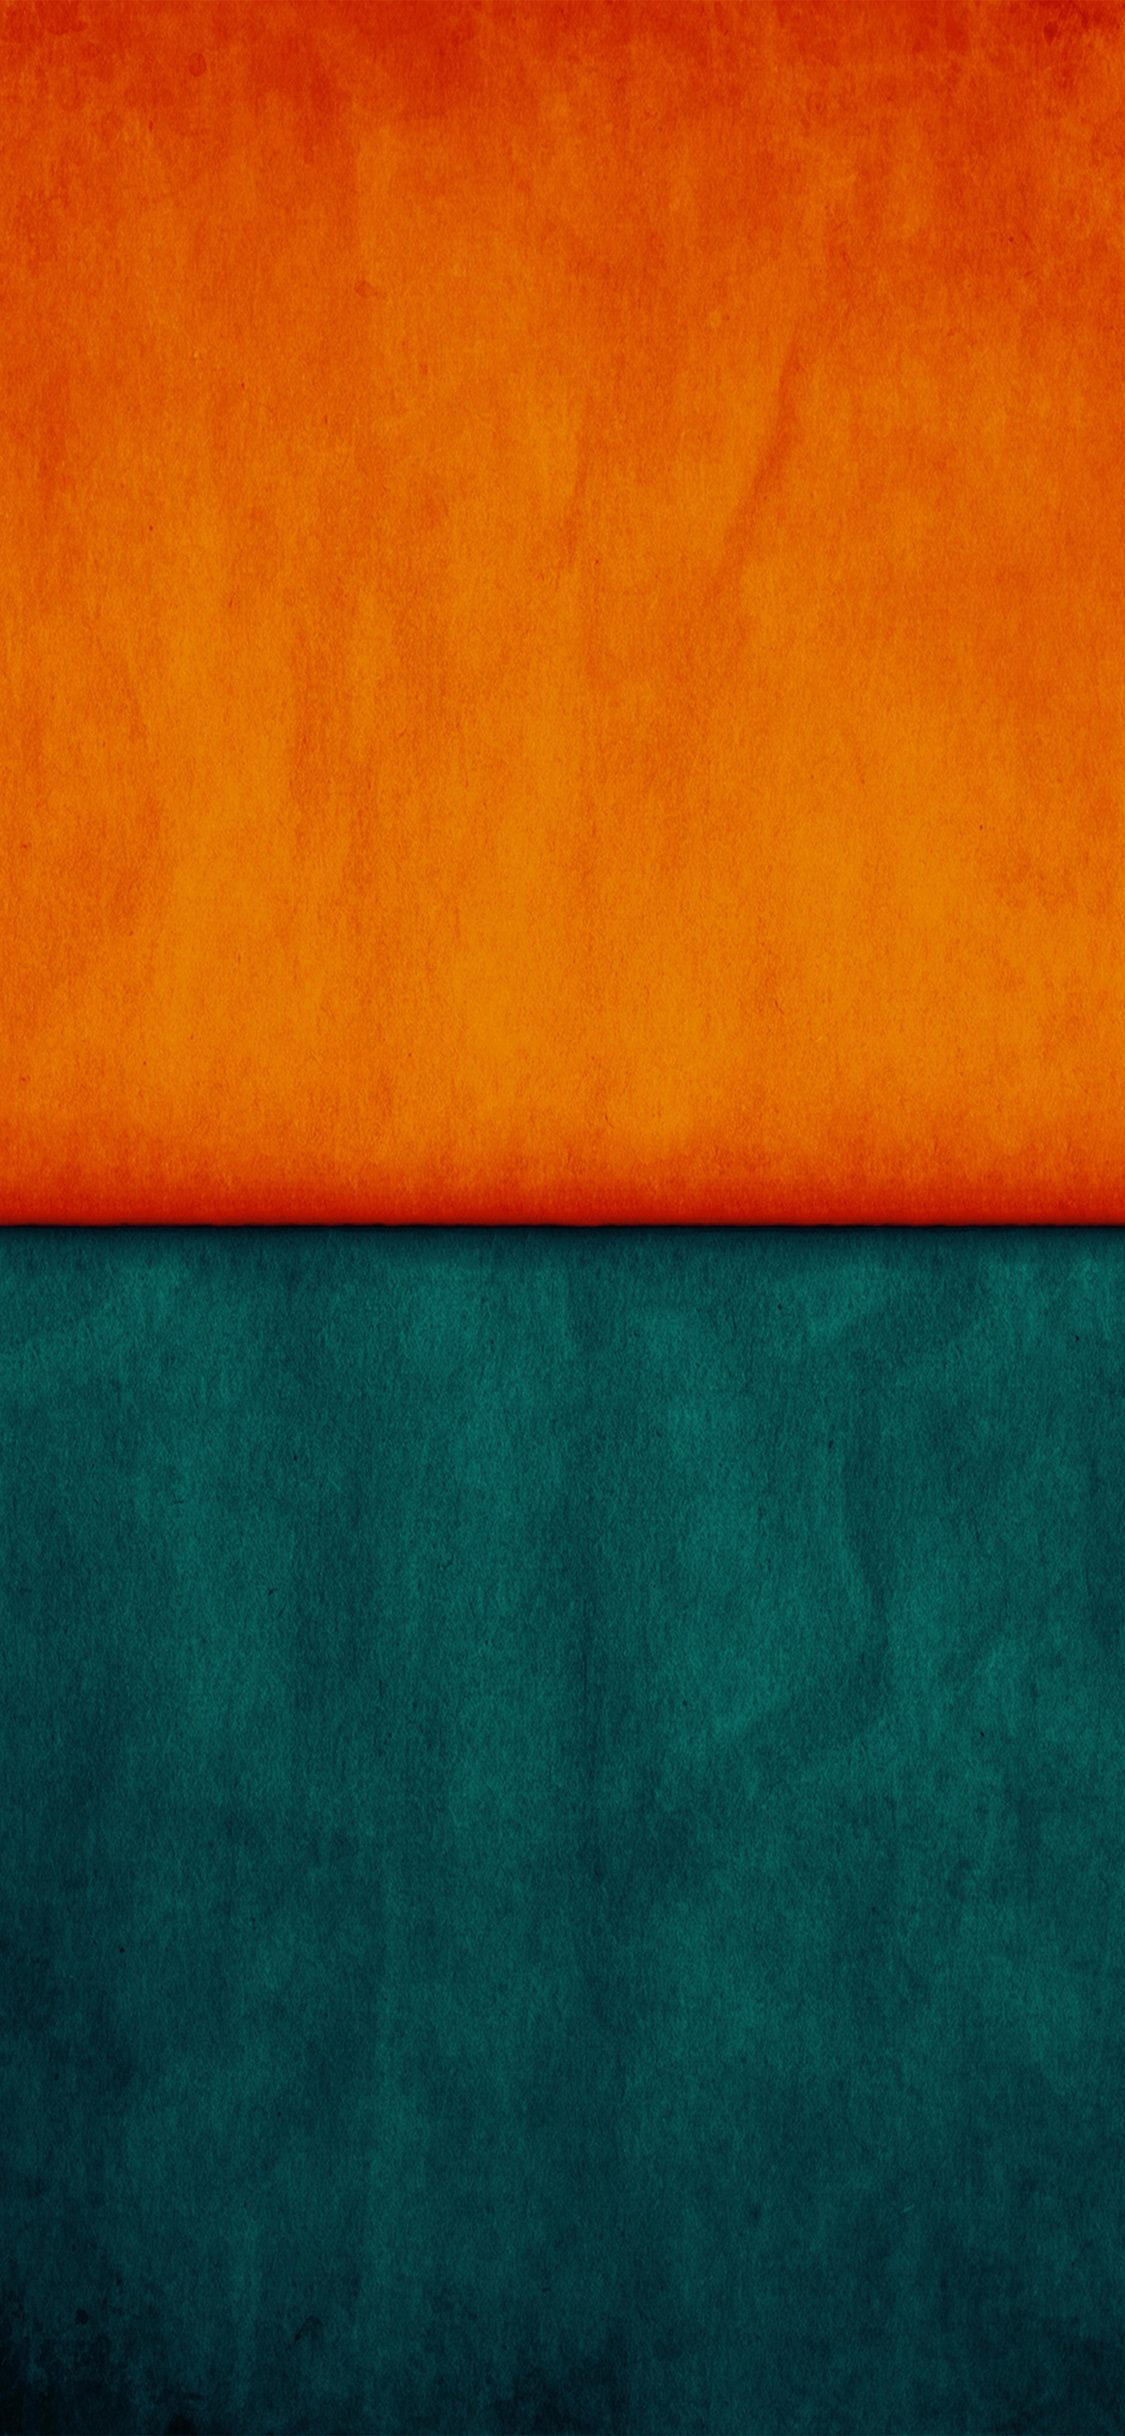 iPhoneXpapers.com-Apple-iPhone-wallpaper-vx27-orange-blue-pattern-background